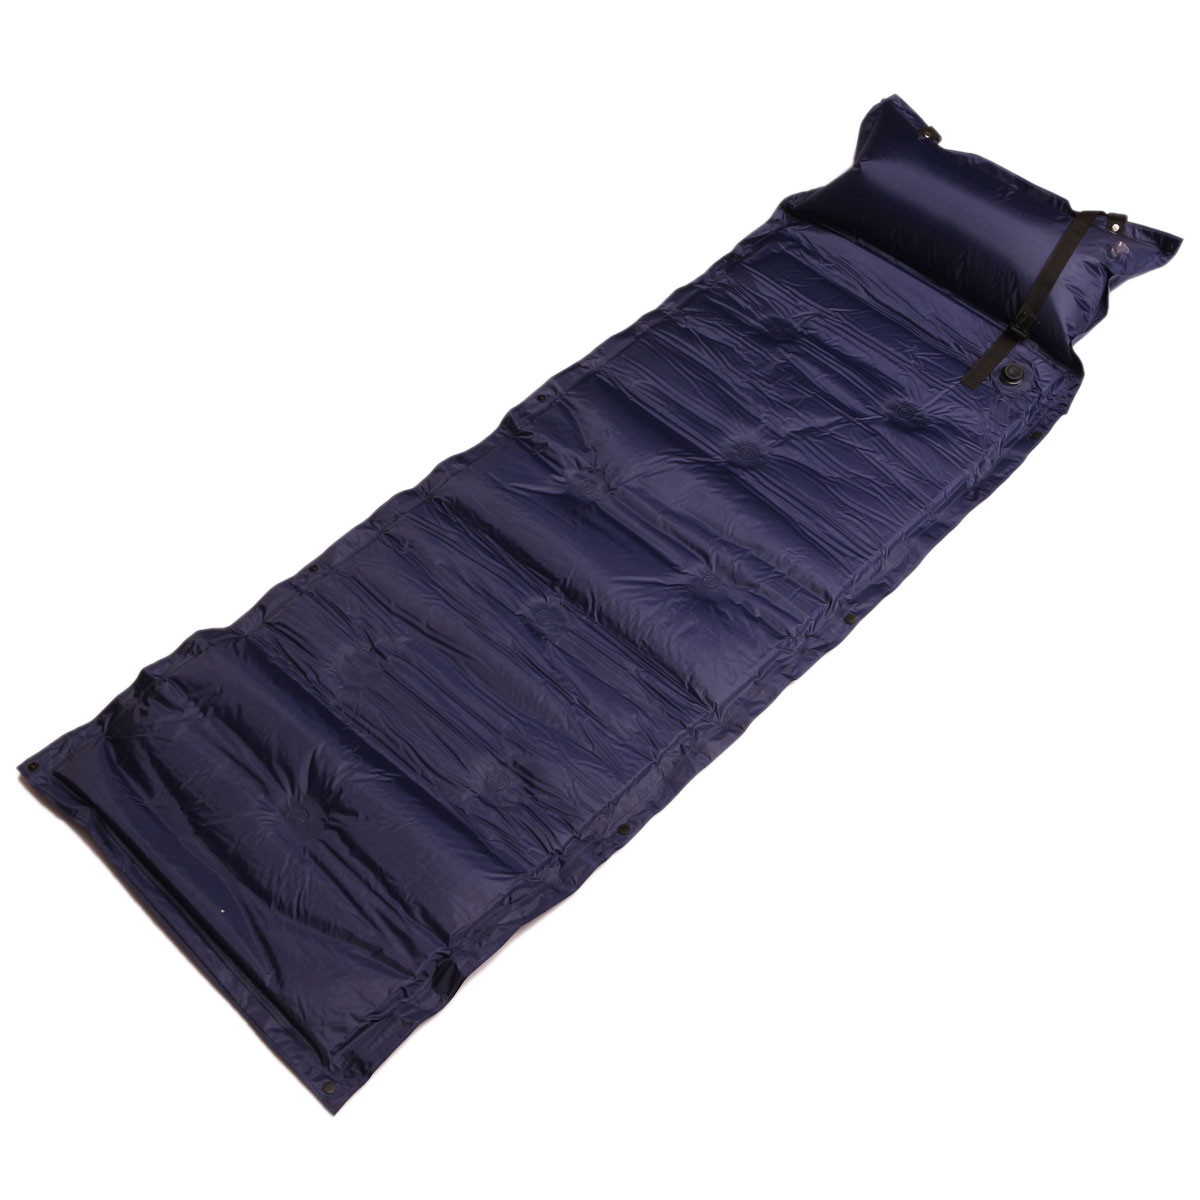 Best Sleeping Pad for Hiking